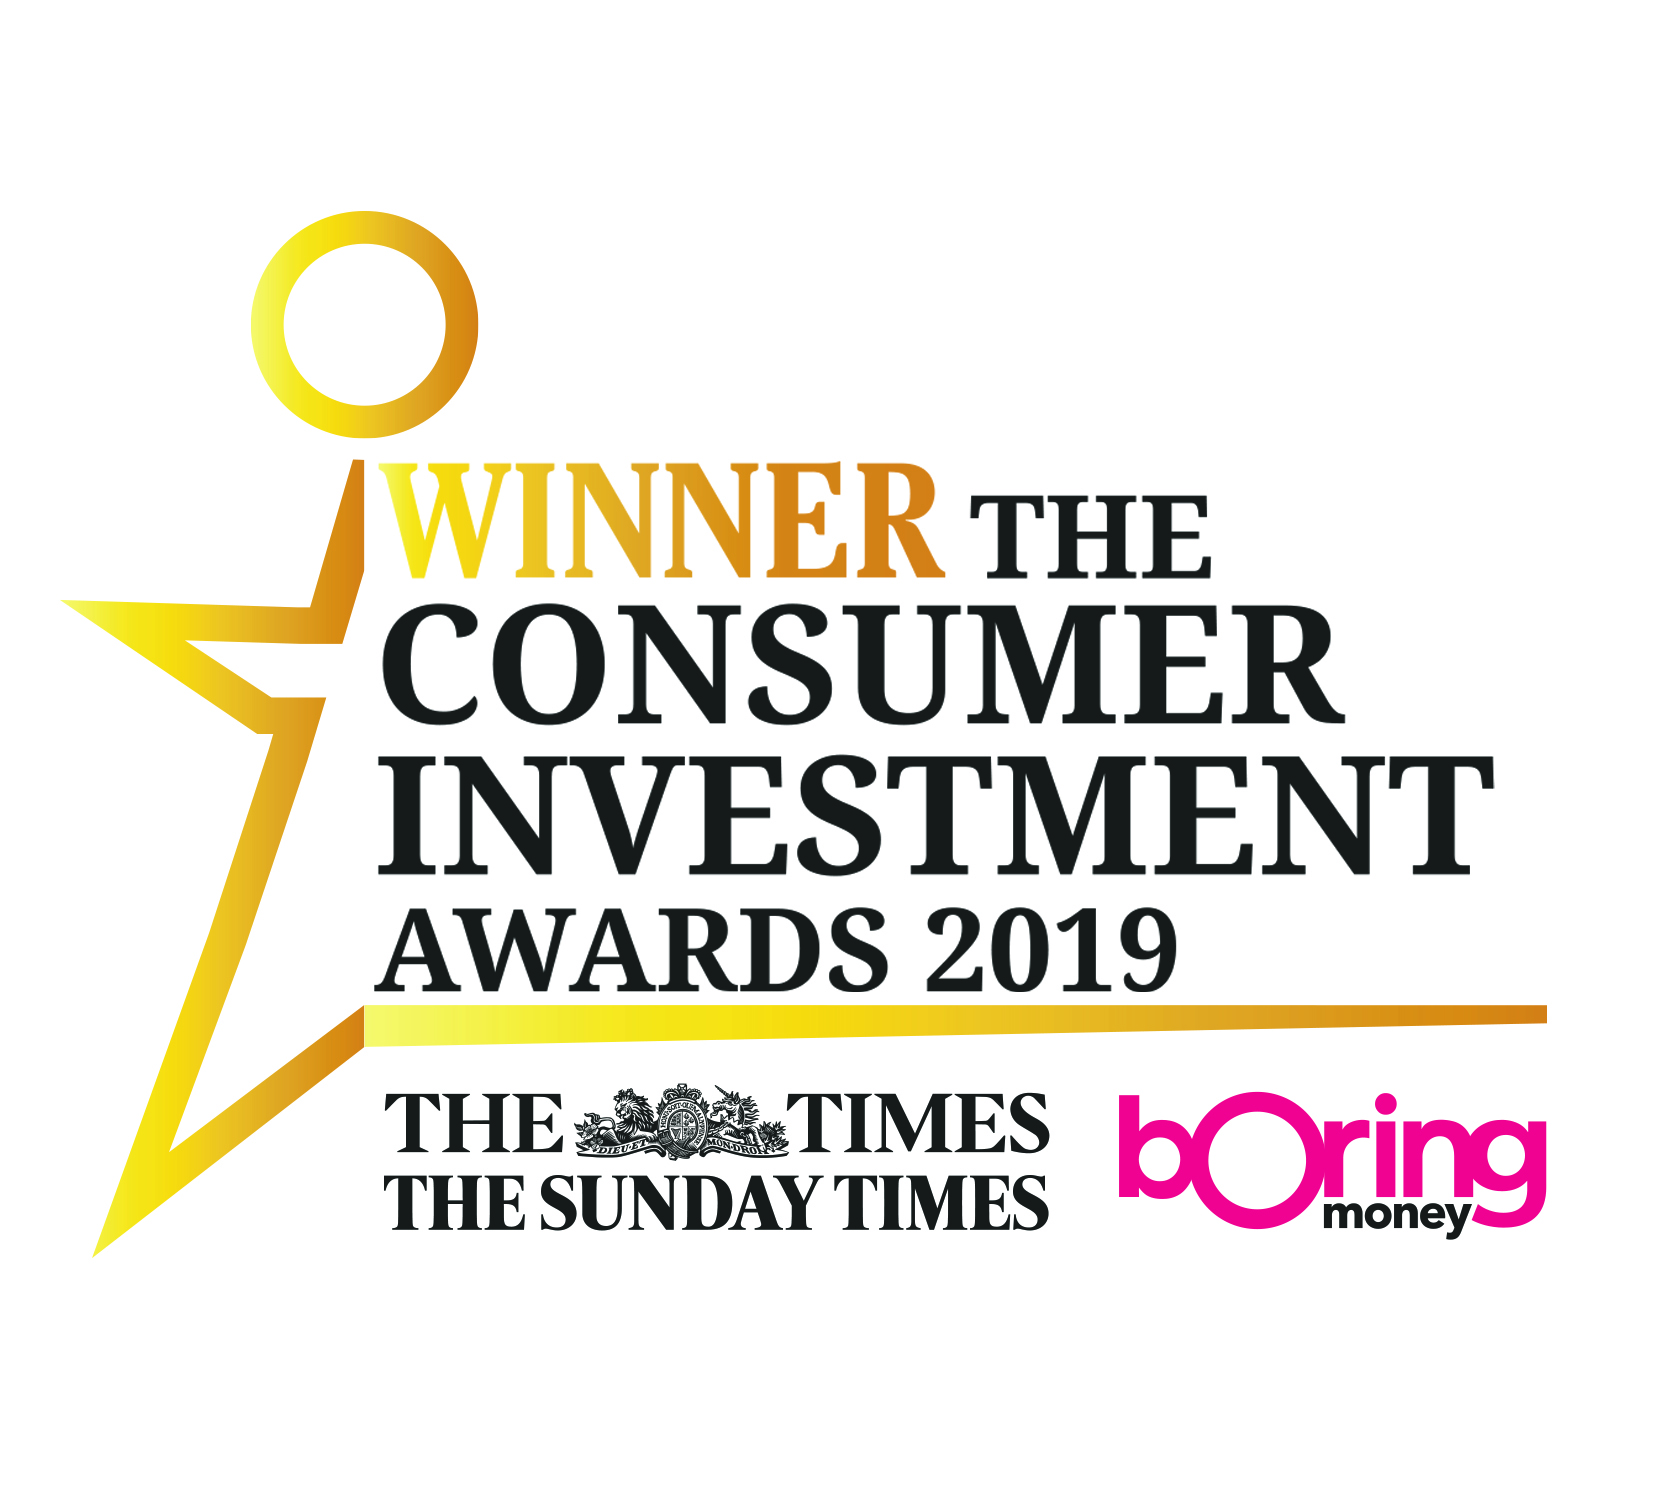 The Consumer Investment Awards Winners